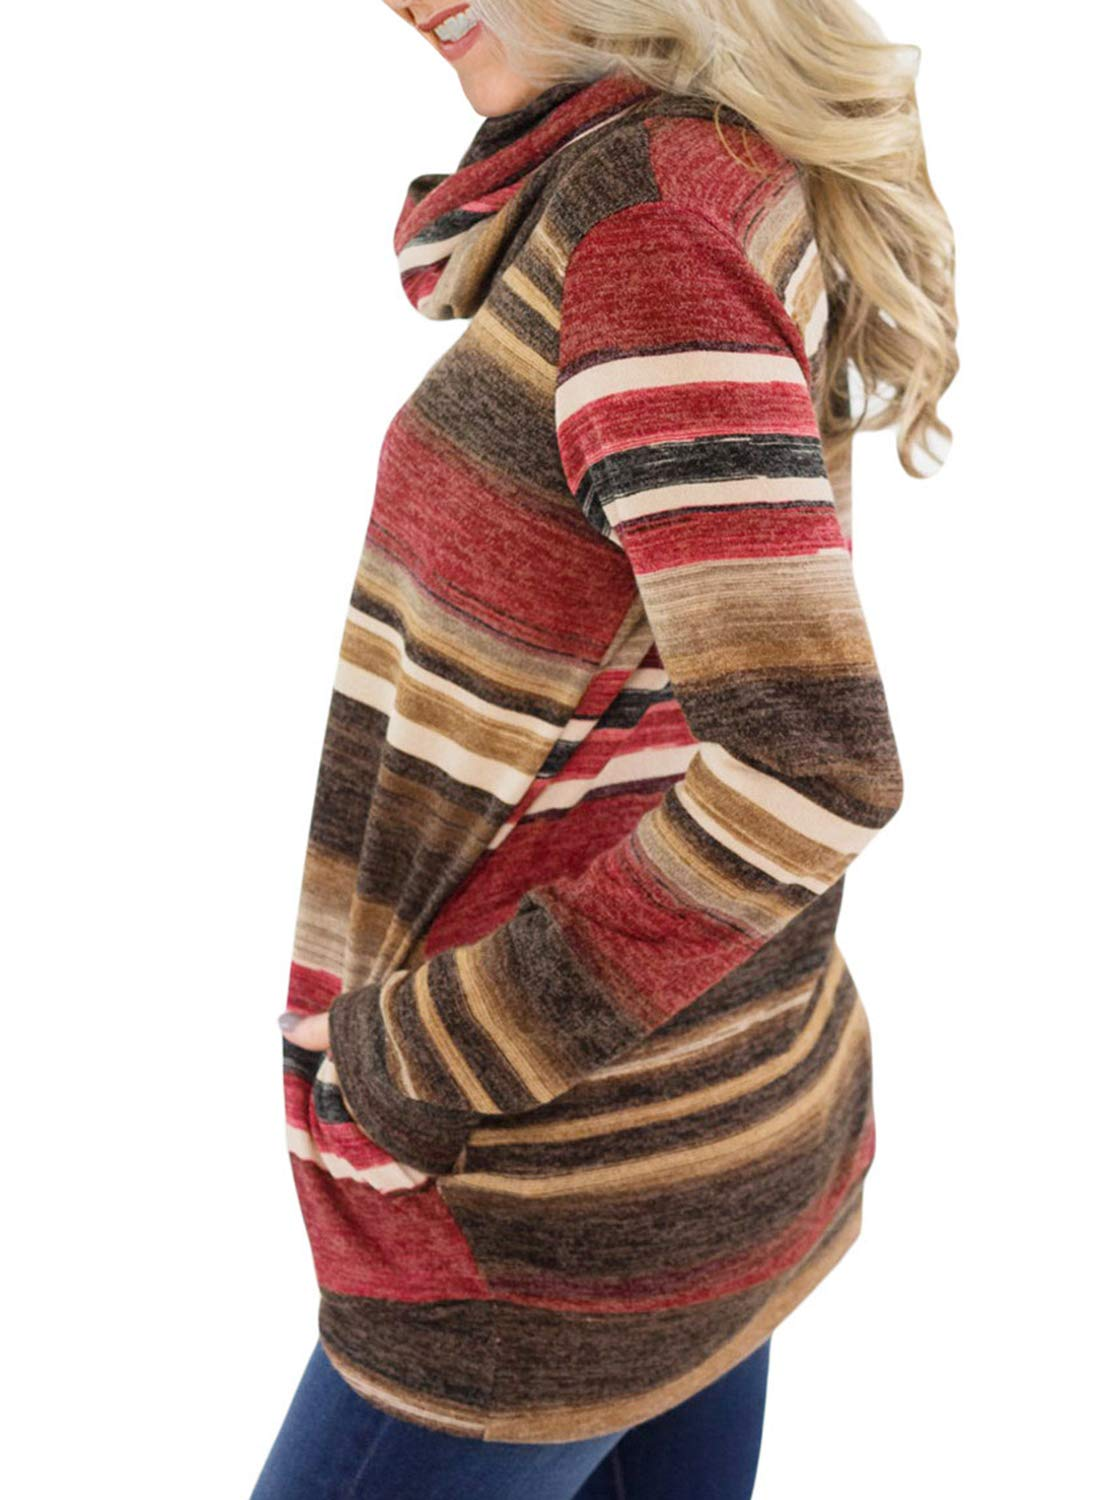 Asvivid Womans Cute Turtle Cowl Neck Colorblock Striped Sweatshirt Drawstring Juniors Sweater Pullover Tops Plus Size 1X Red - wiihuu